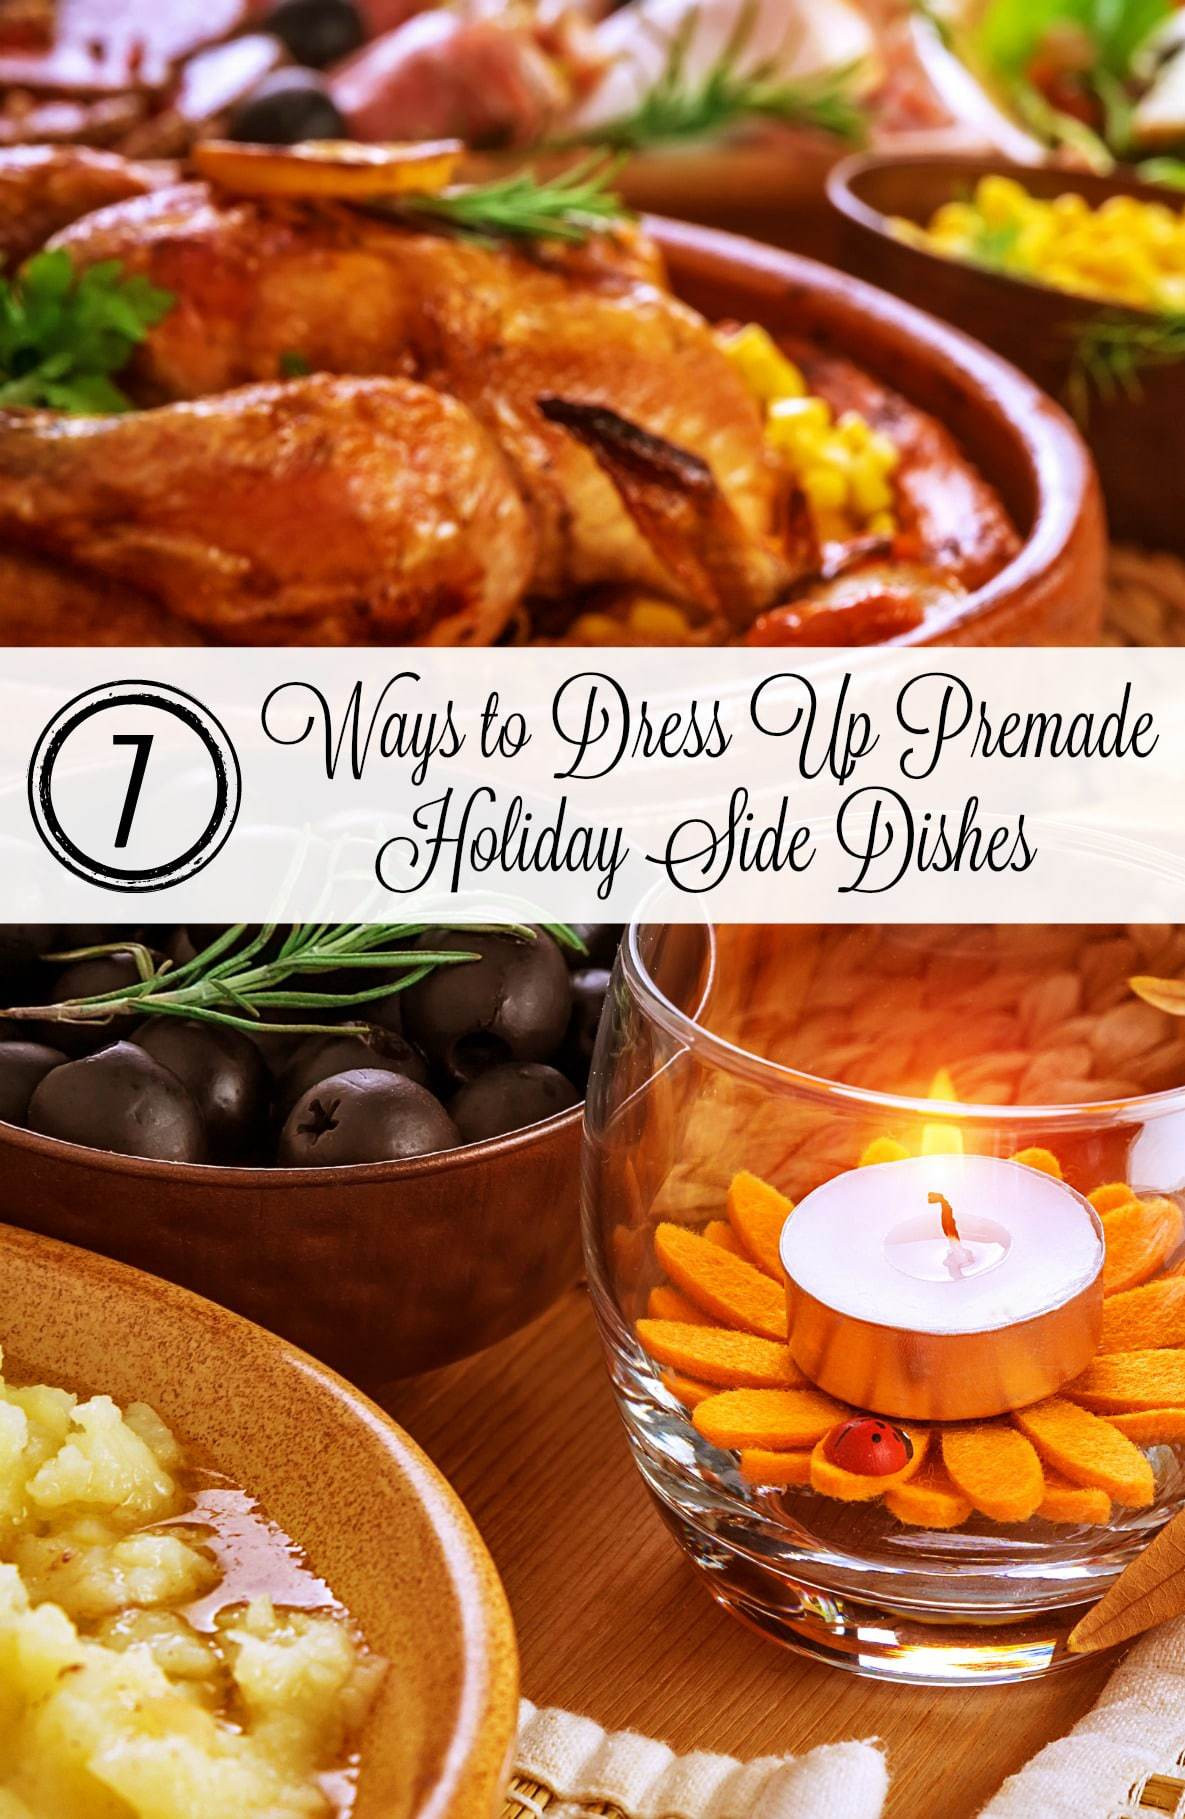 Premade Christmas Dinner  7 Ways to Dress Up Premade Holiday Side Dishes DinDin